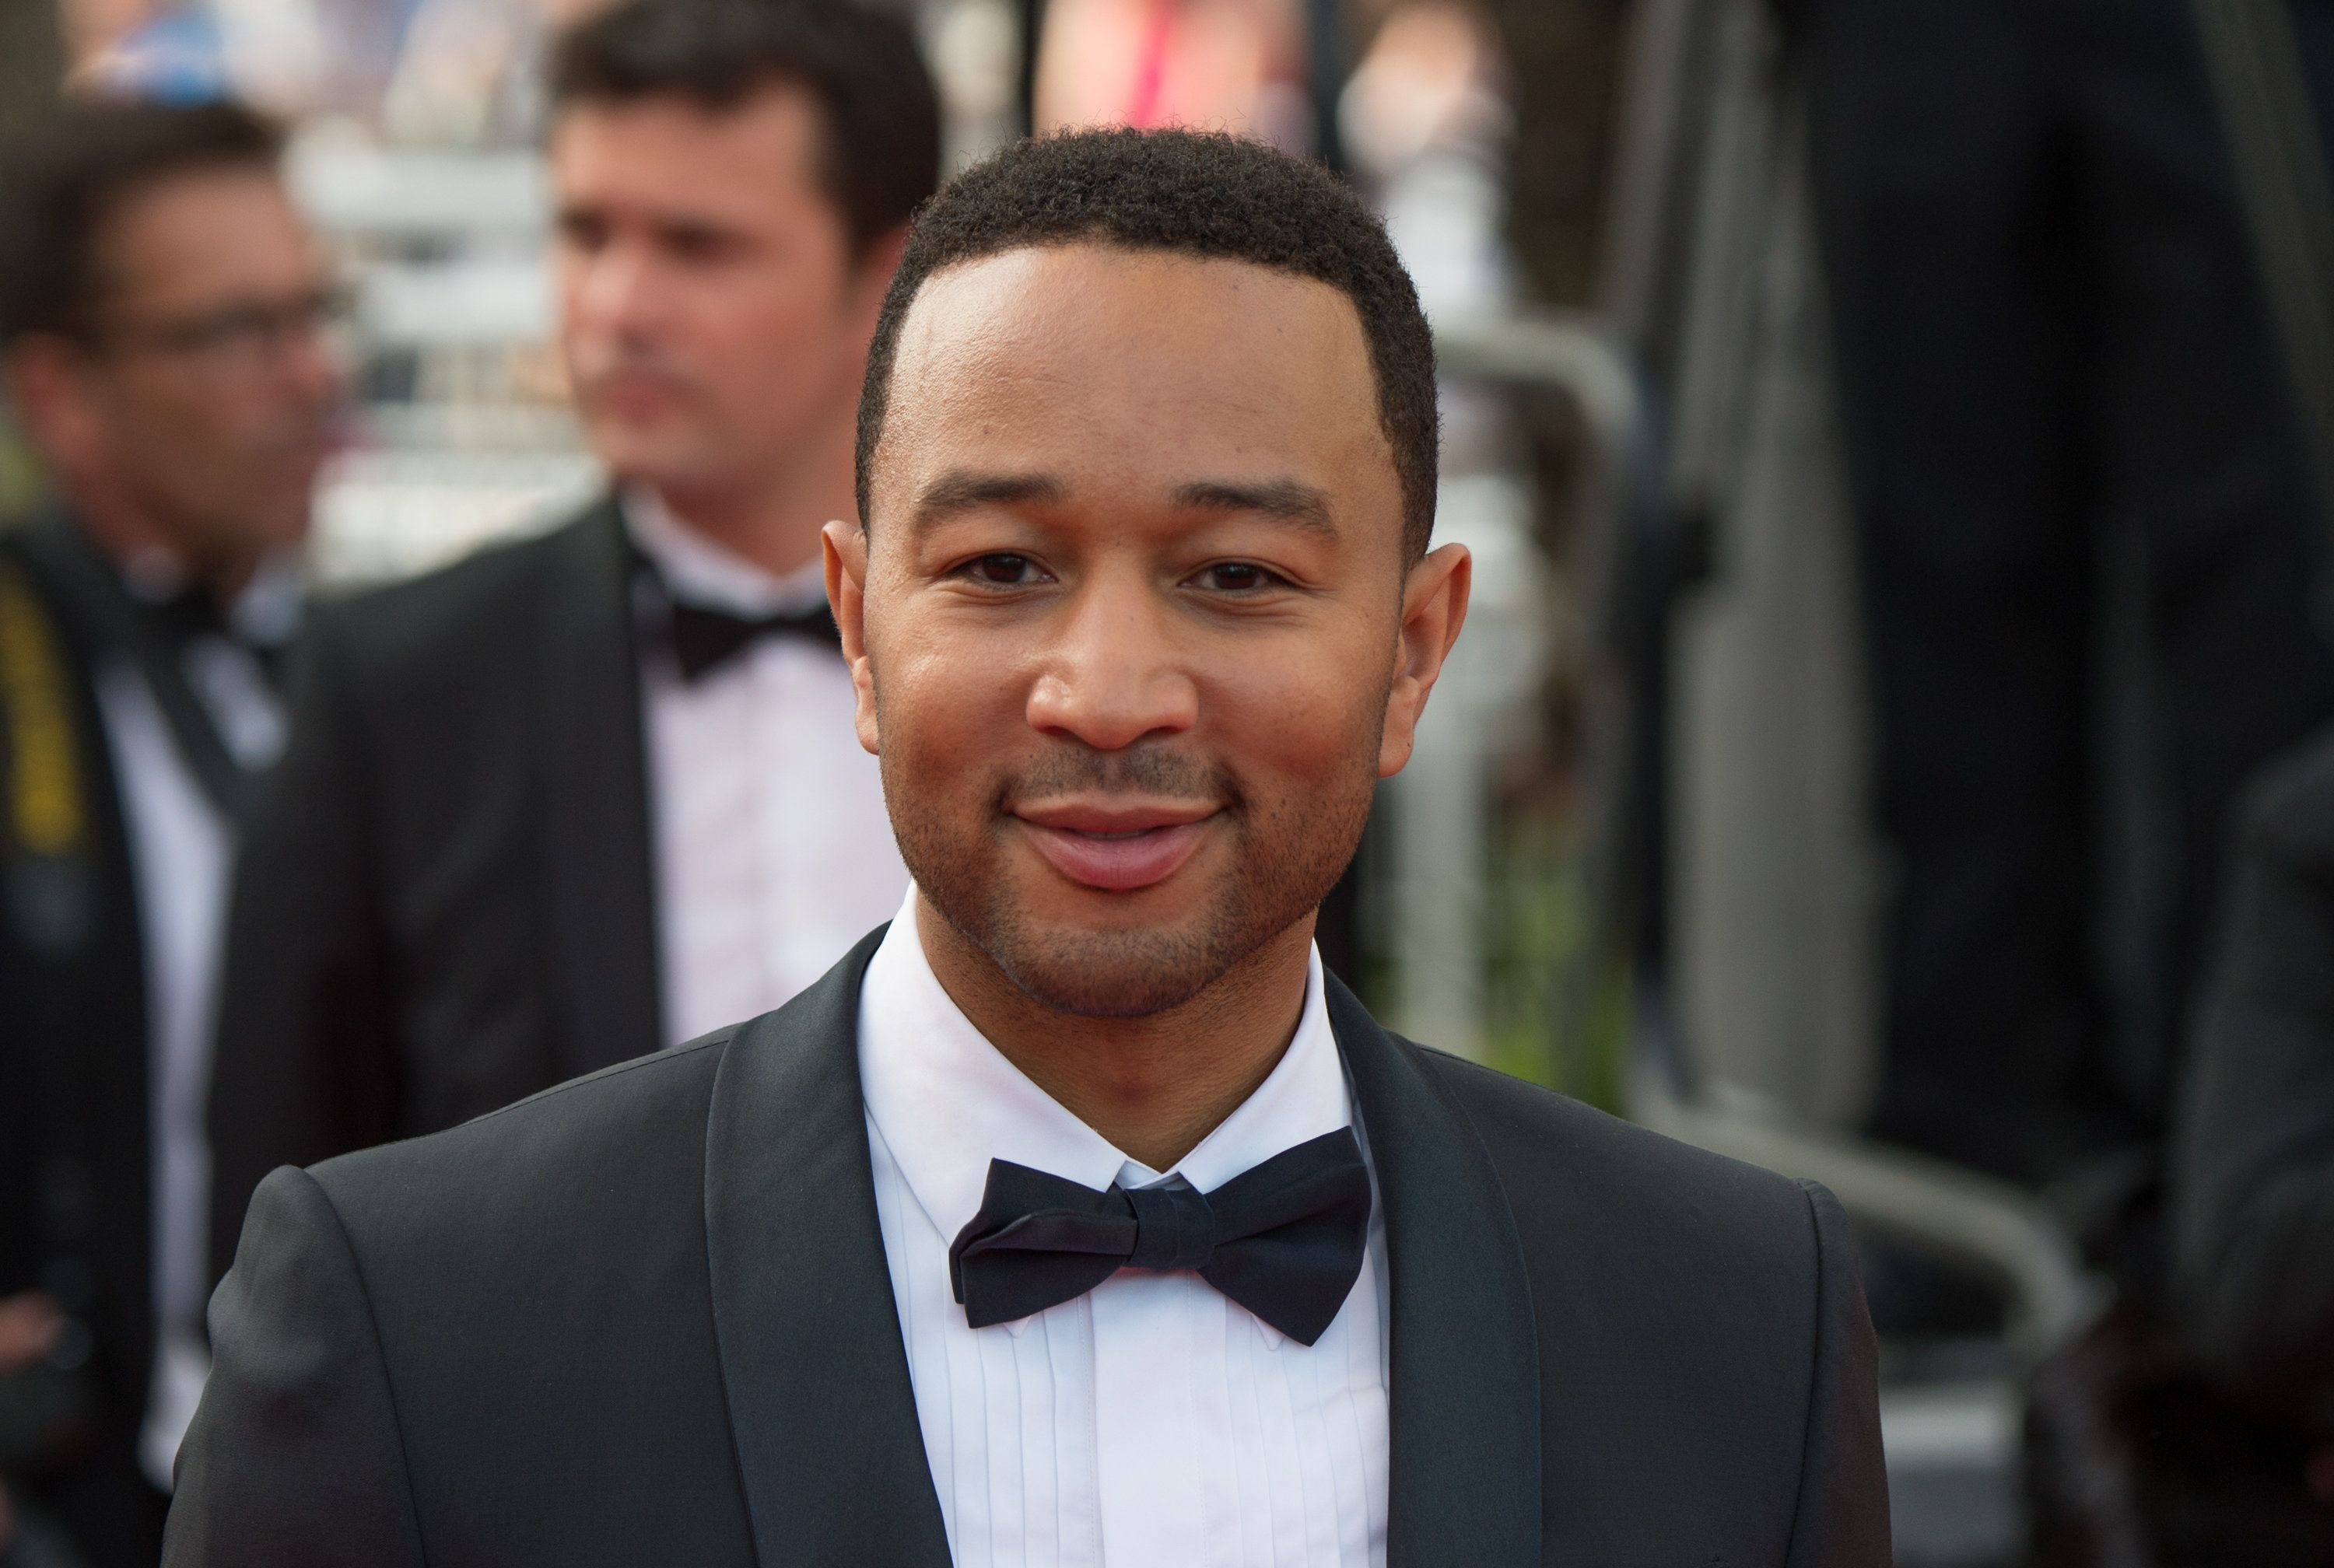 CANNES, FRANCE - MAY 13:  John Legend attends the opening ceremony and premiere of 'La Tete Haute ('Standing Tall') during the 68th annual Cannes Film Festival on May 13, 2015 in Cannes, France.  (Photo by Samir Hussein/WireImage)